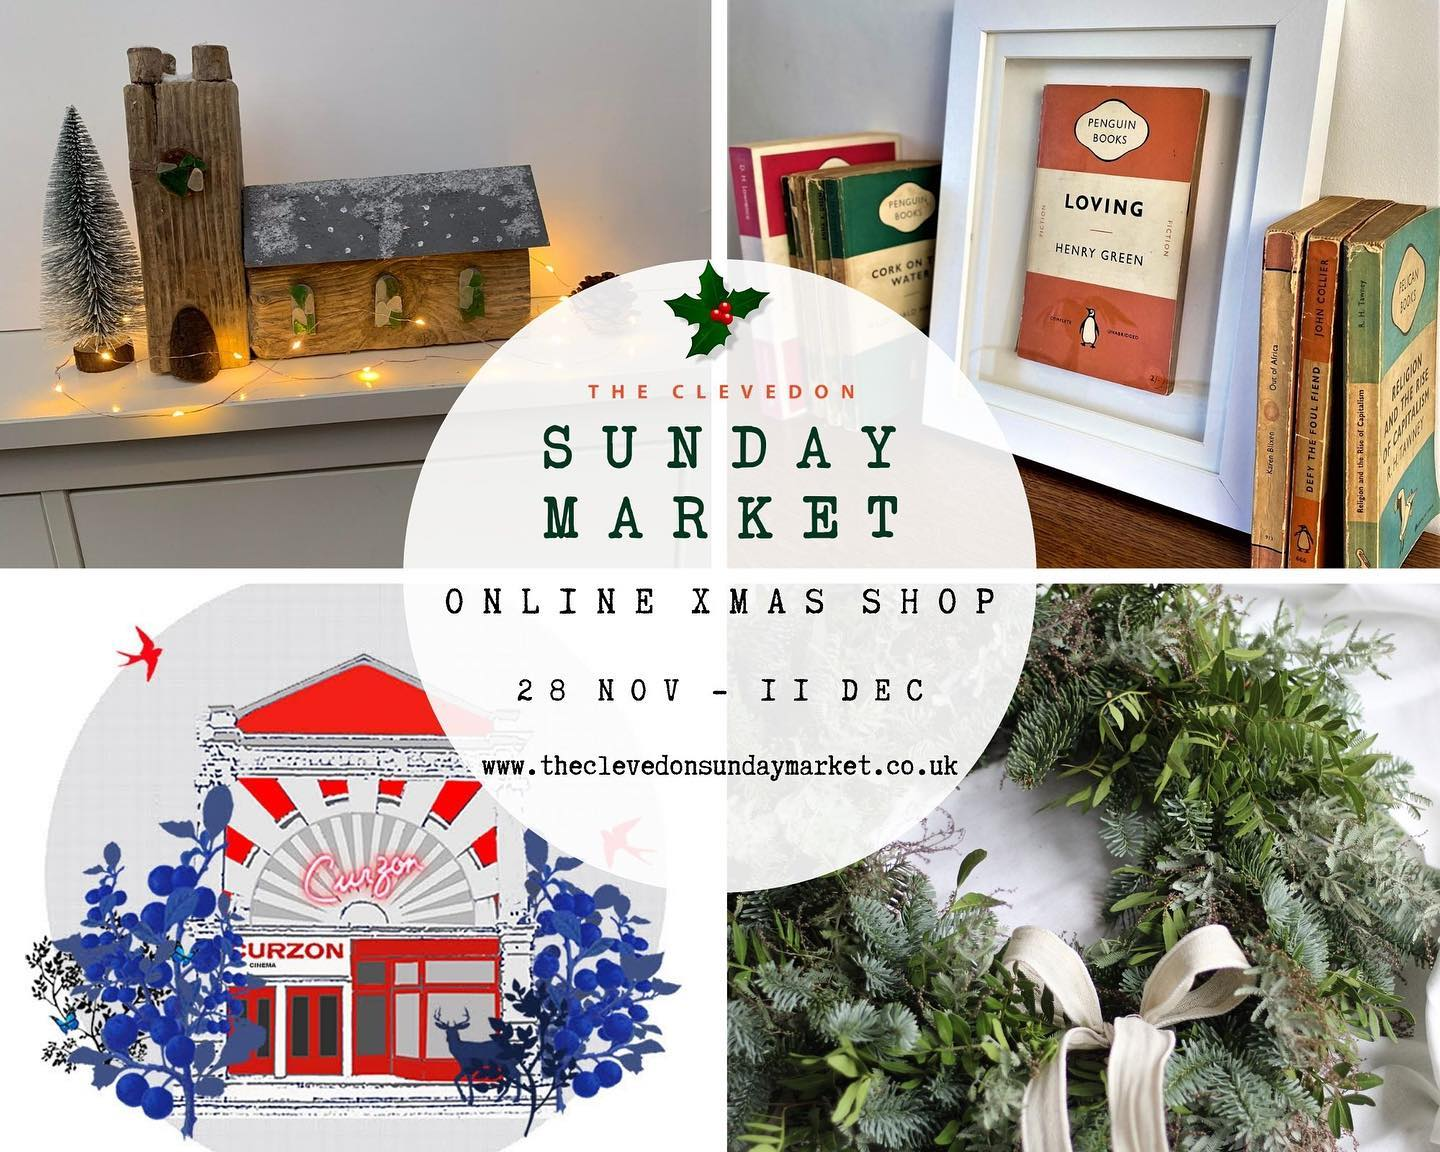 From today you can shop handmade and unique gifts from the @clevedonsundaymarket website. You'll be able to browse lots of lovely items all in one place. 40 talented local makers have been working hard to make items perfect for gifting or treating yourself during the festive period. For two weeks only -www.theclevedonsundaymarket.co.uk